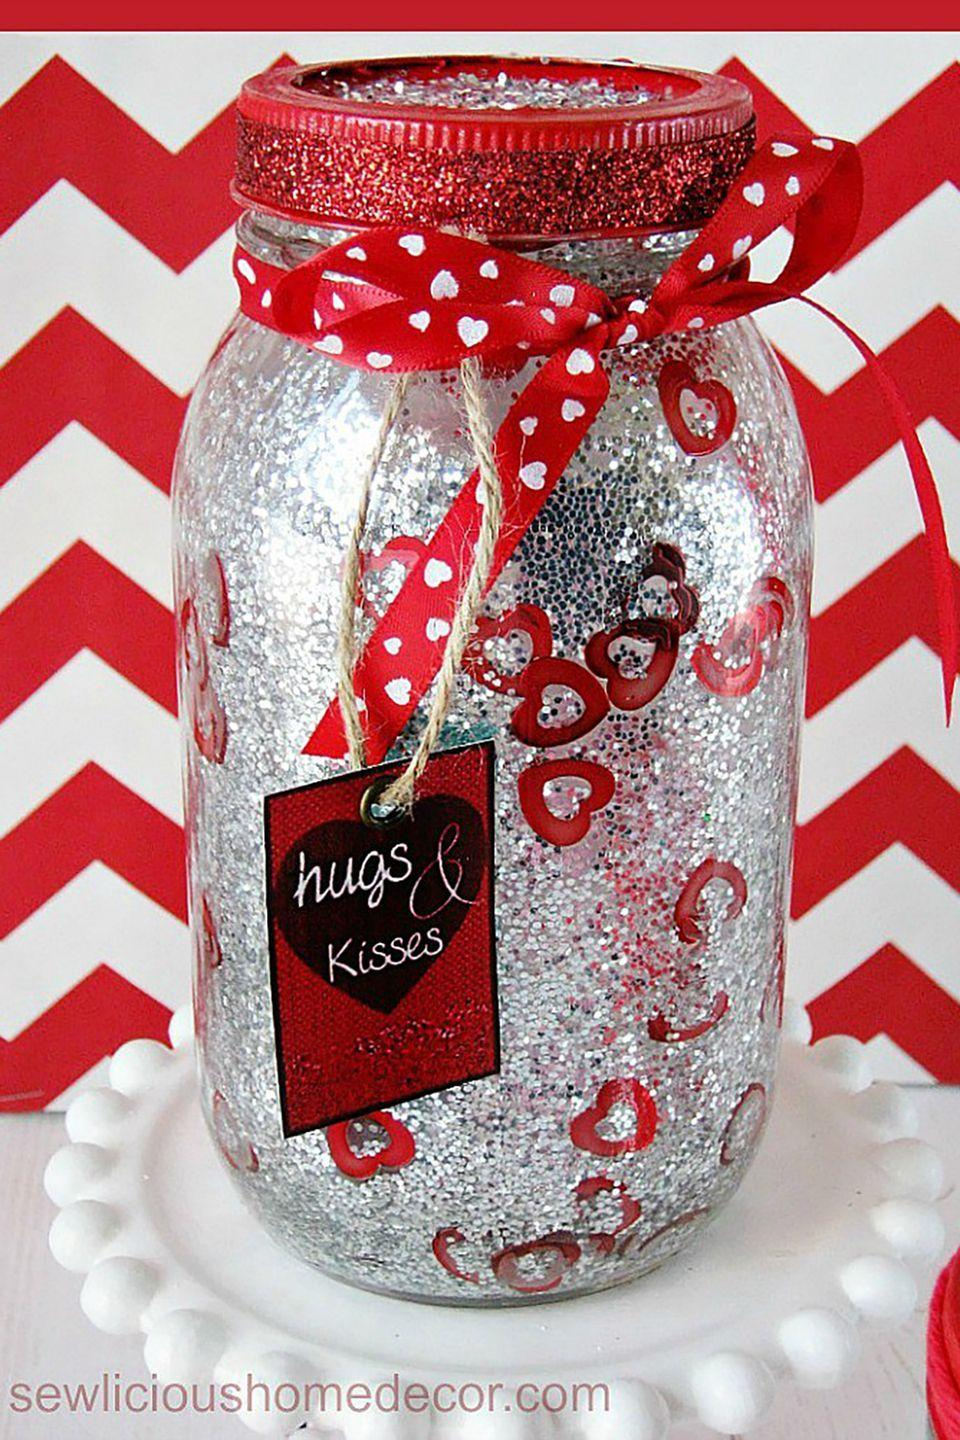 """<p><span class=""""redactor-invisible-space"""">Glitter addicts, this is the craft for you! Not only is it easy to make, supplies will cost you less than $5.</span></p><p><strong>Get the tutorial at <a href=""""http://sewlicioushomedecor.com/make-red-valentine-jars-glitter-confetti/"""" rel=""""nofollow noopener"""" target=""""_blank"""" data-ylk=""""slk:Sewlicious Home Decor"""" class=""""link rapid-noclick-resp"""">Sewlicious Home Decor</a>.</strong></p><p><a class=""""link rapid-noclick-resp"""" href=""""https://www.amazon.com/Topenca-Supplies-Inches-Double-Ribbon/dp/B01ENR4L4Q/ref=sr_1_1_sspa?tag=syn-yahoo-20&ascsubtag=%5Bartid%7C10050.g.93%5Bsrc%7Cyahoo-us"""" rel=""""nofollow noopener"""" target=""""_blank"""" data-ylk=""""slk:SHOP RED RIBBON"""">SHOP RED RIBBON</a></p>"""